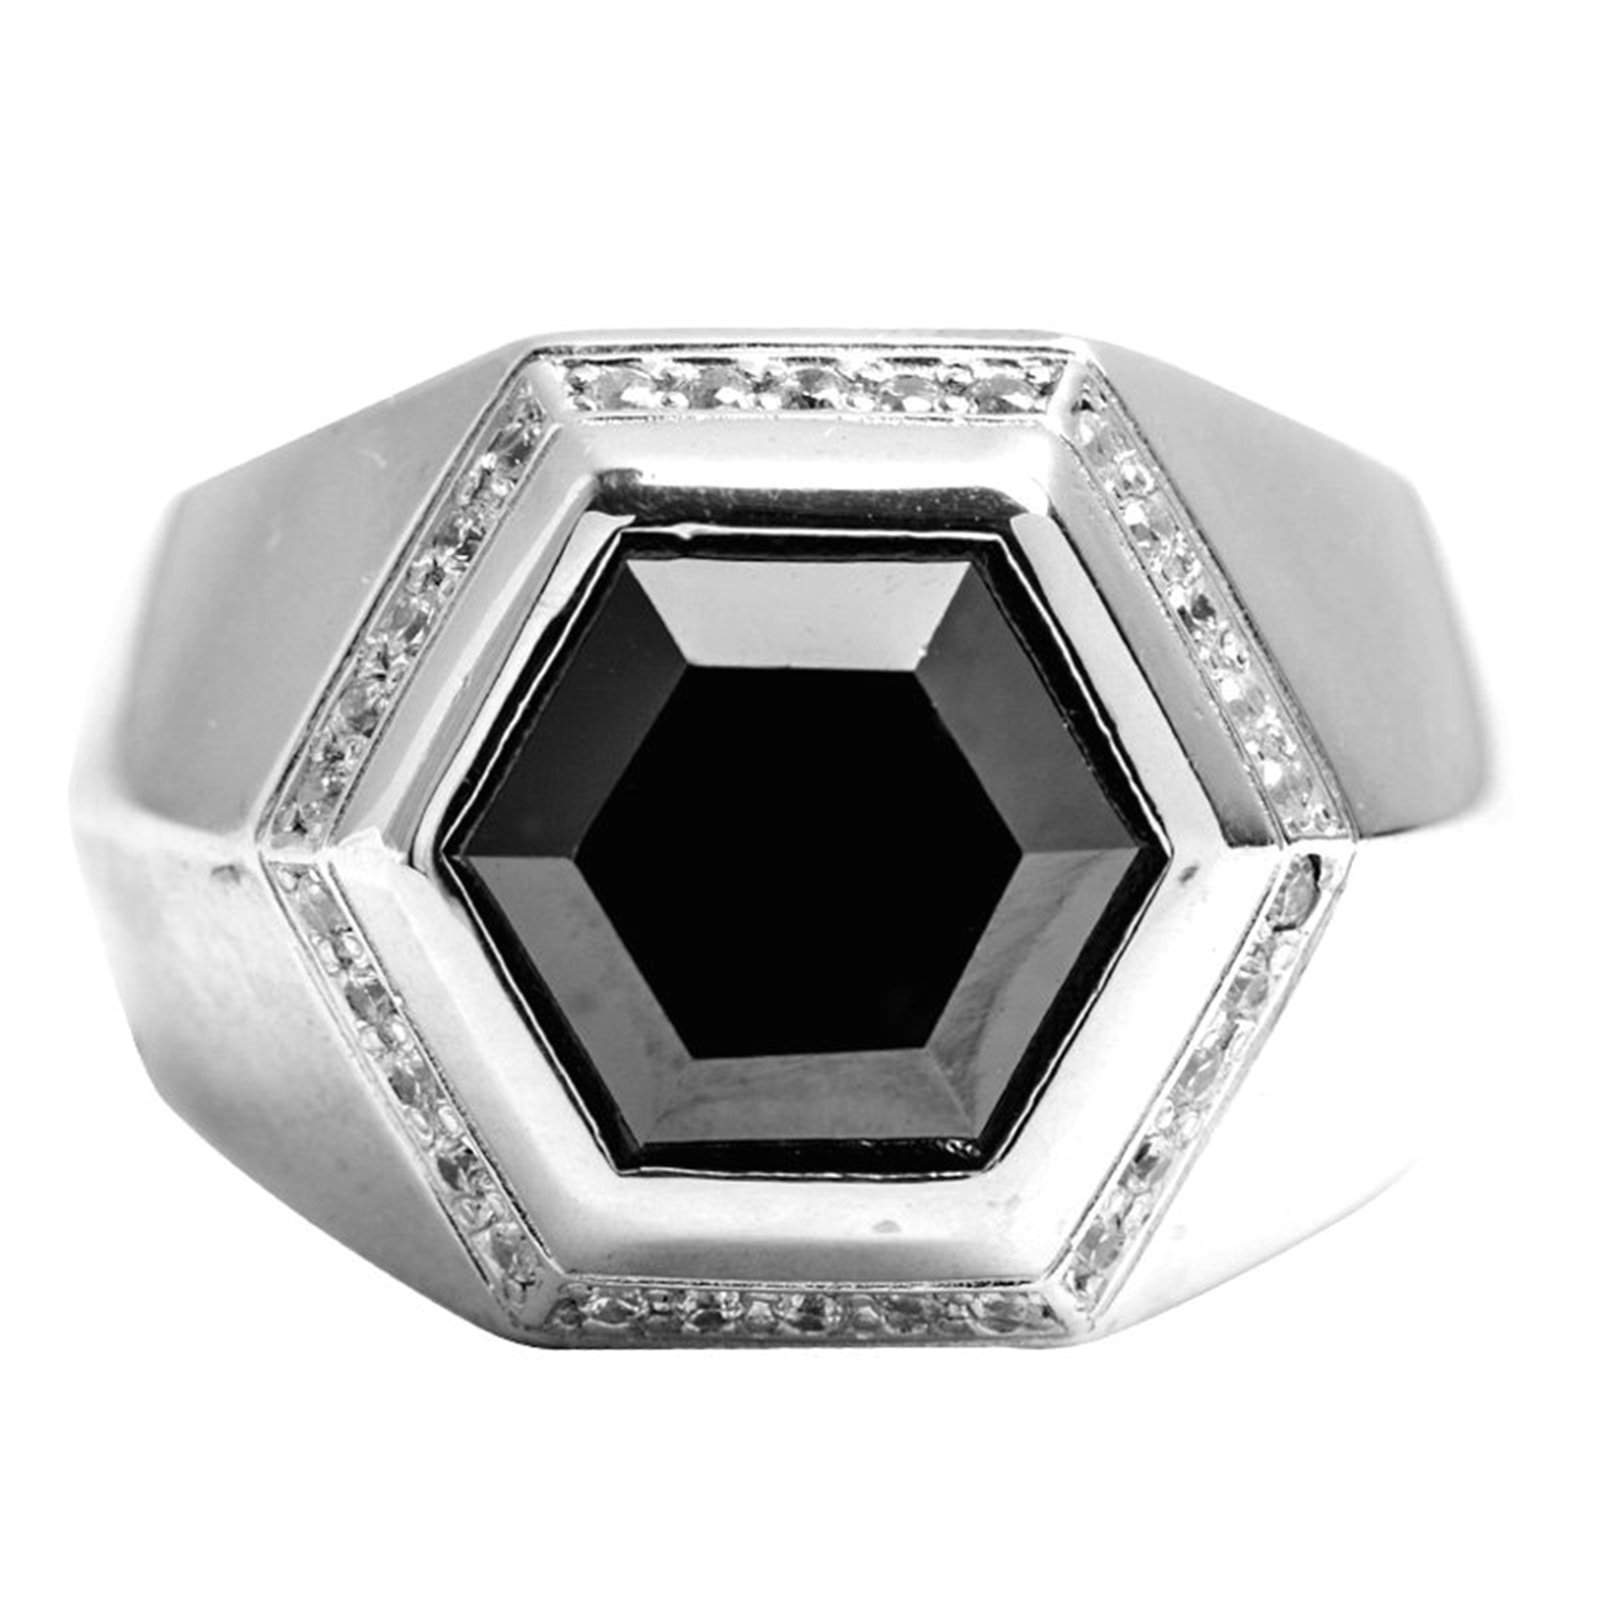 Epinki 925 Sterling Silver Punk Rock Vintage Gothic Black Cubic Zirconia Hexagon Ring for Men Size 7 by Epinki